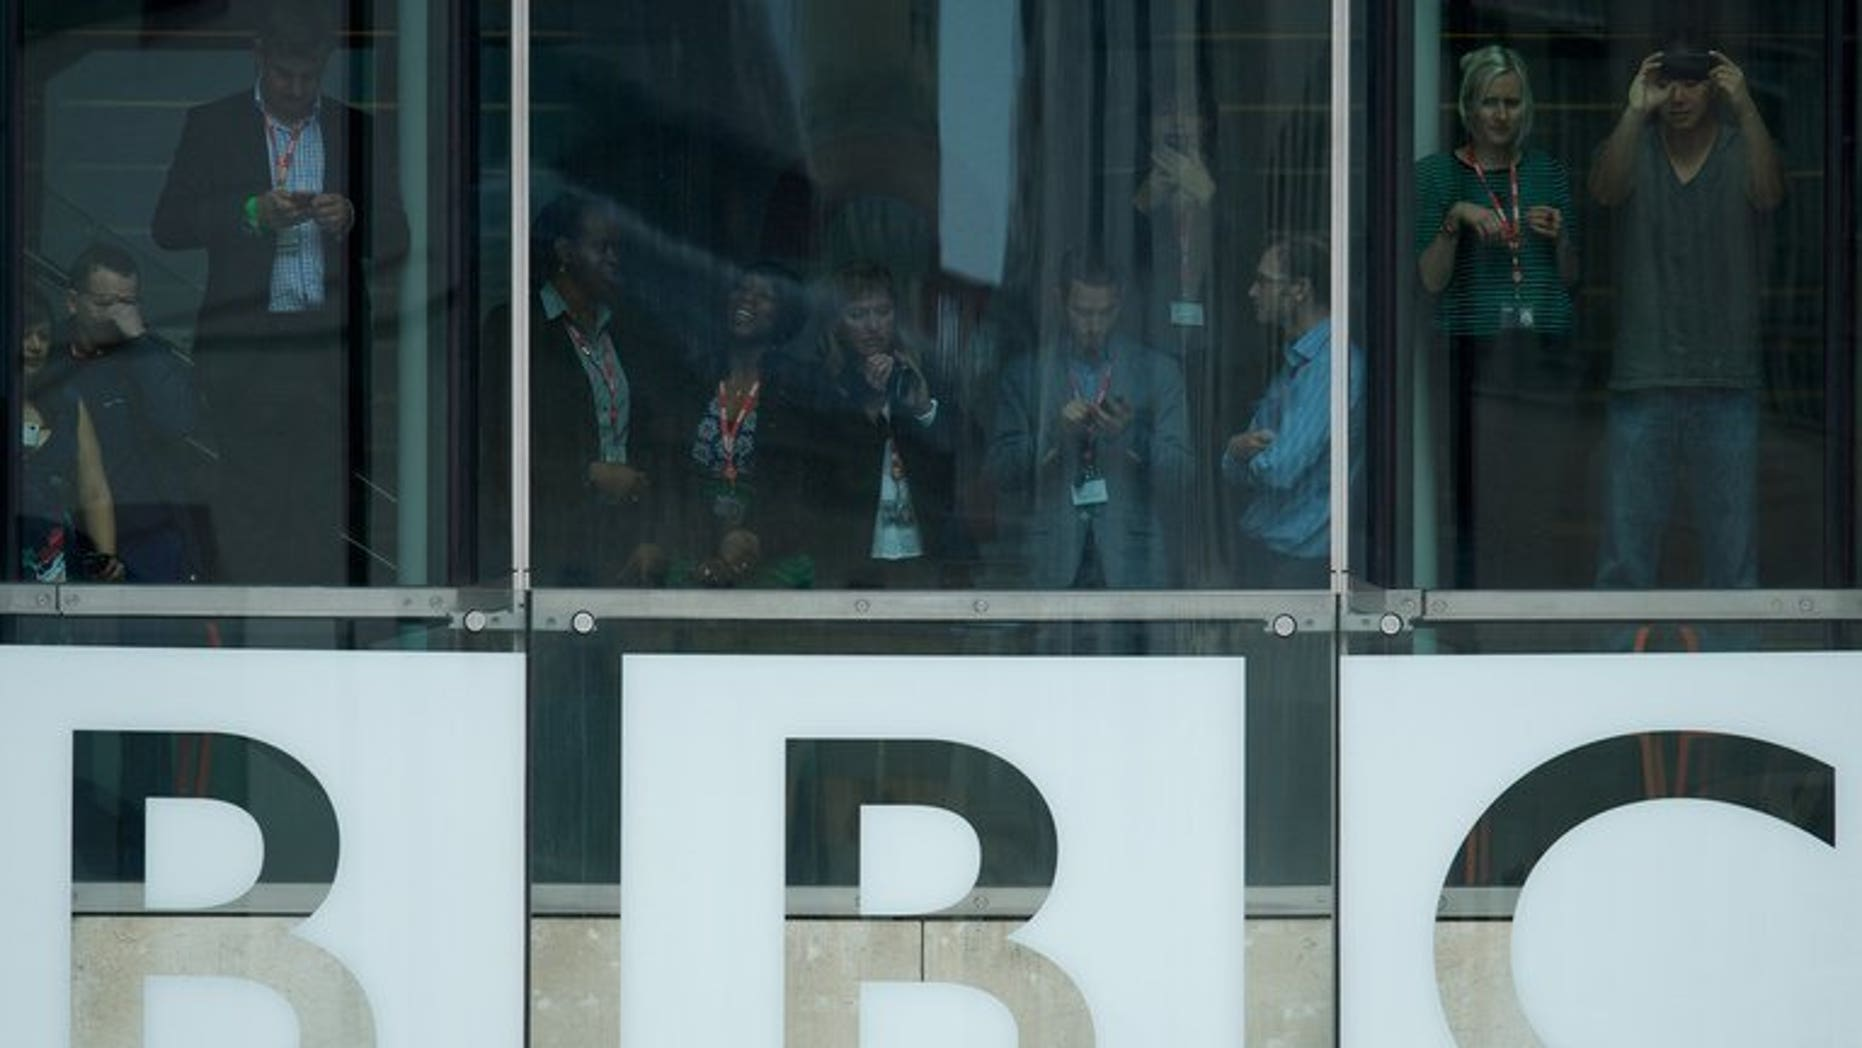 Members of the BBC staff are seen in the of Broadcasting House in central London on June 7, 2013. The BBC has spent around ??5 million on inquiries related to the Jimmy Savile scandal, the broadcaster revealed in its annual report.